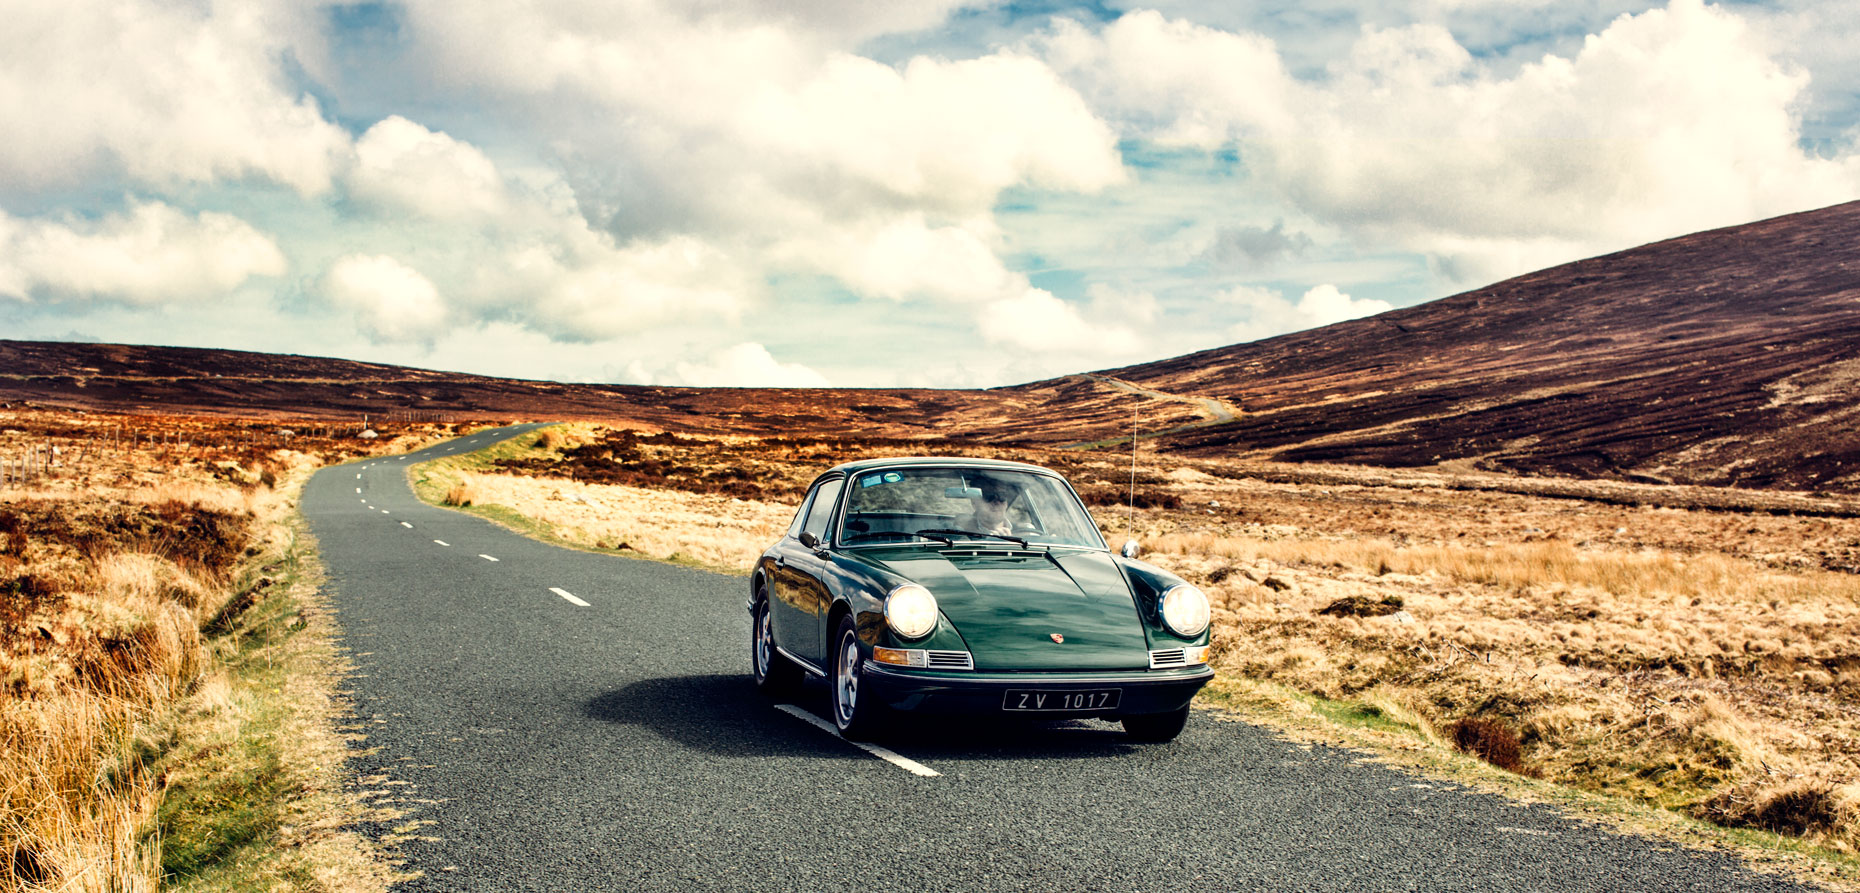 portrait photography: a vintage porsche on the open road